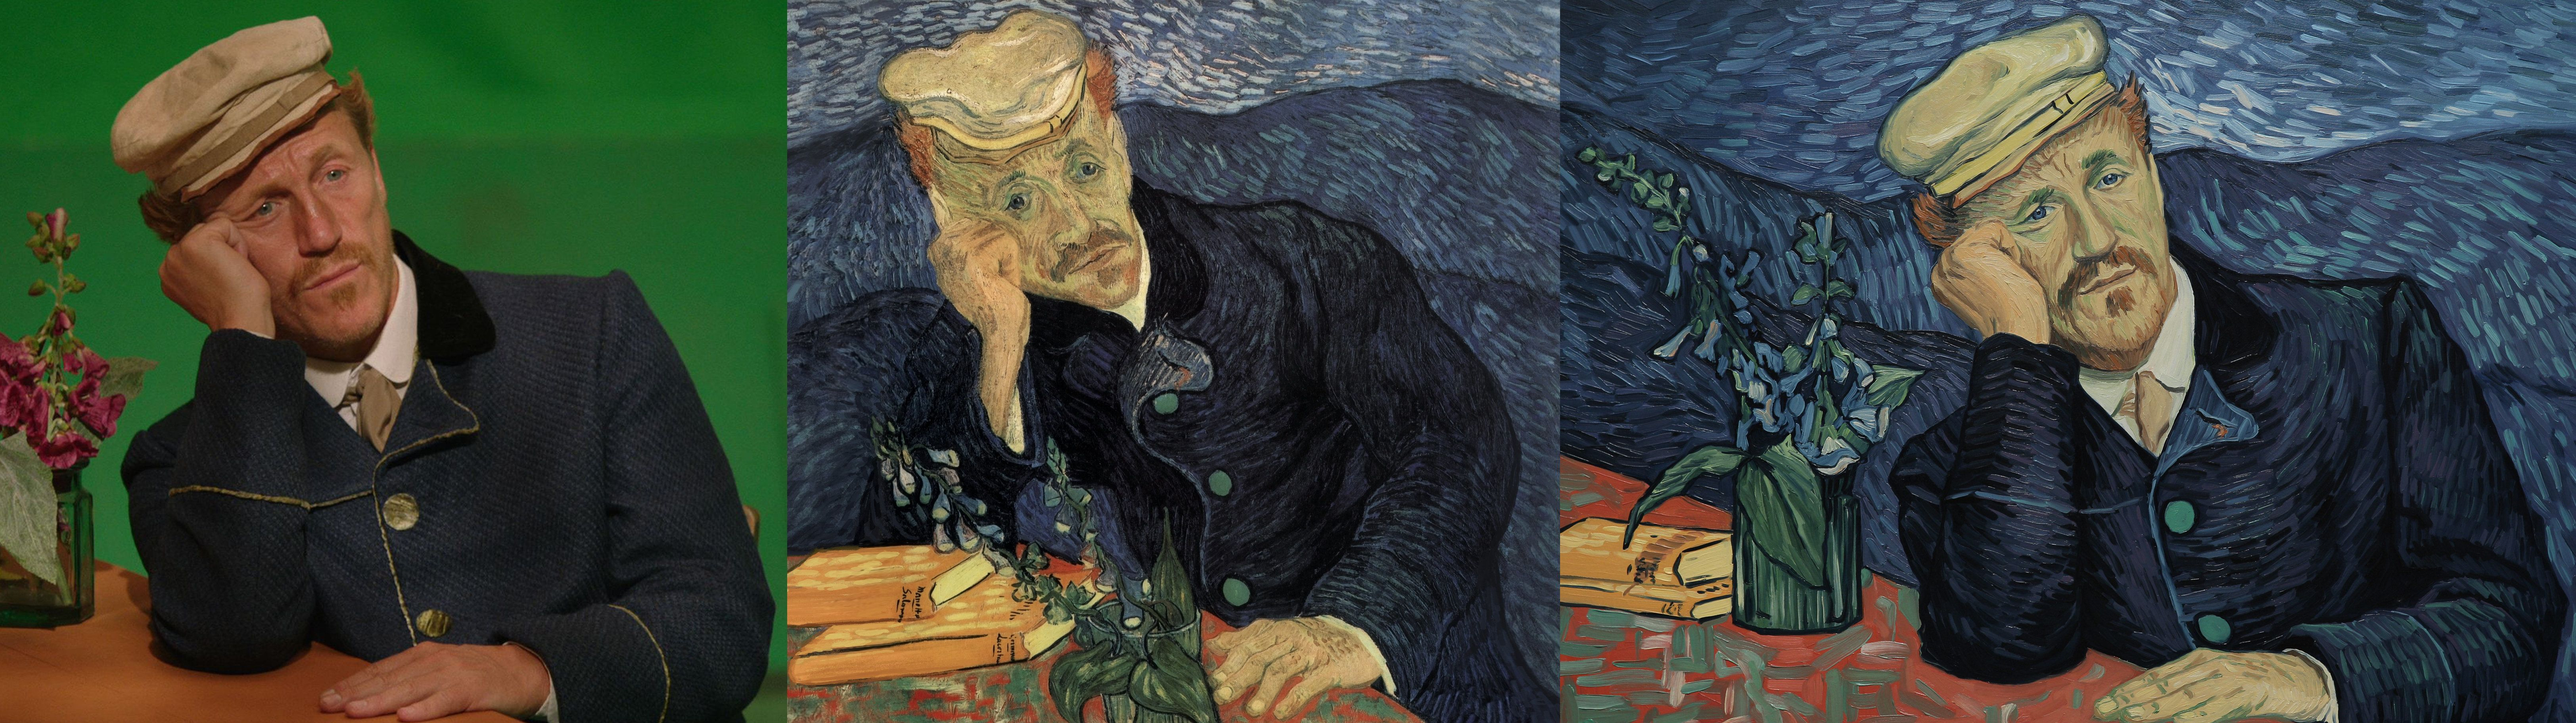 Watch Actors Transform Into Living Van Gogh Paintings Before Your Eyes images 5